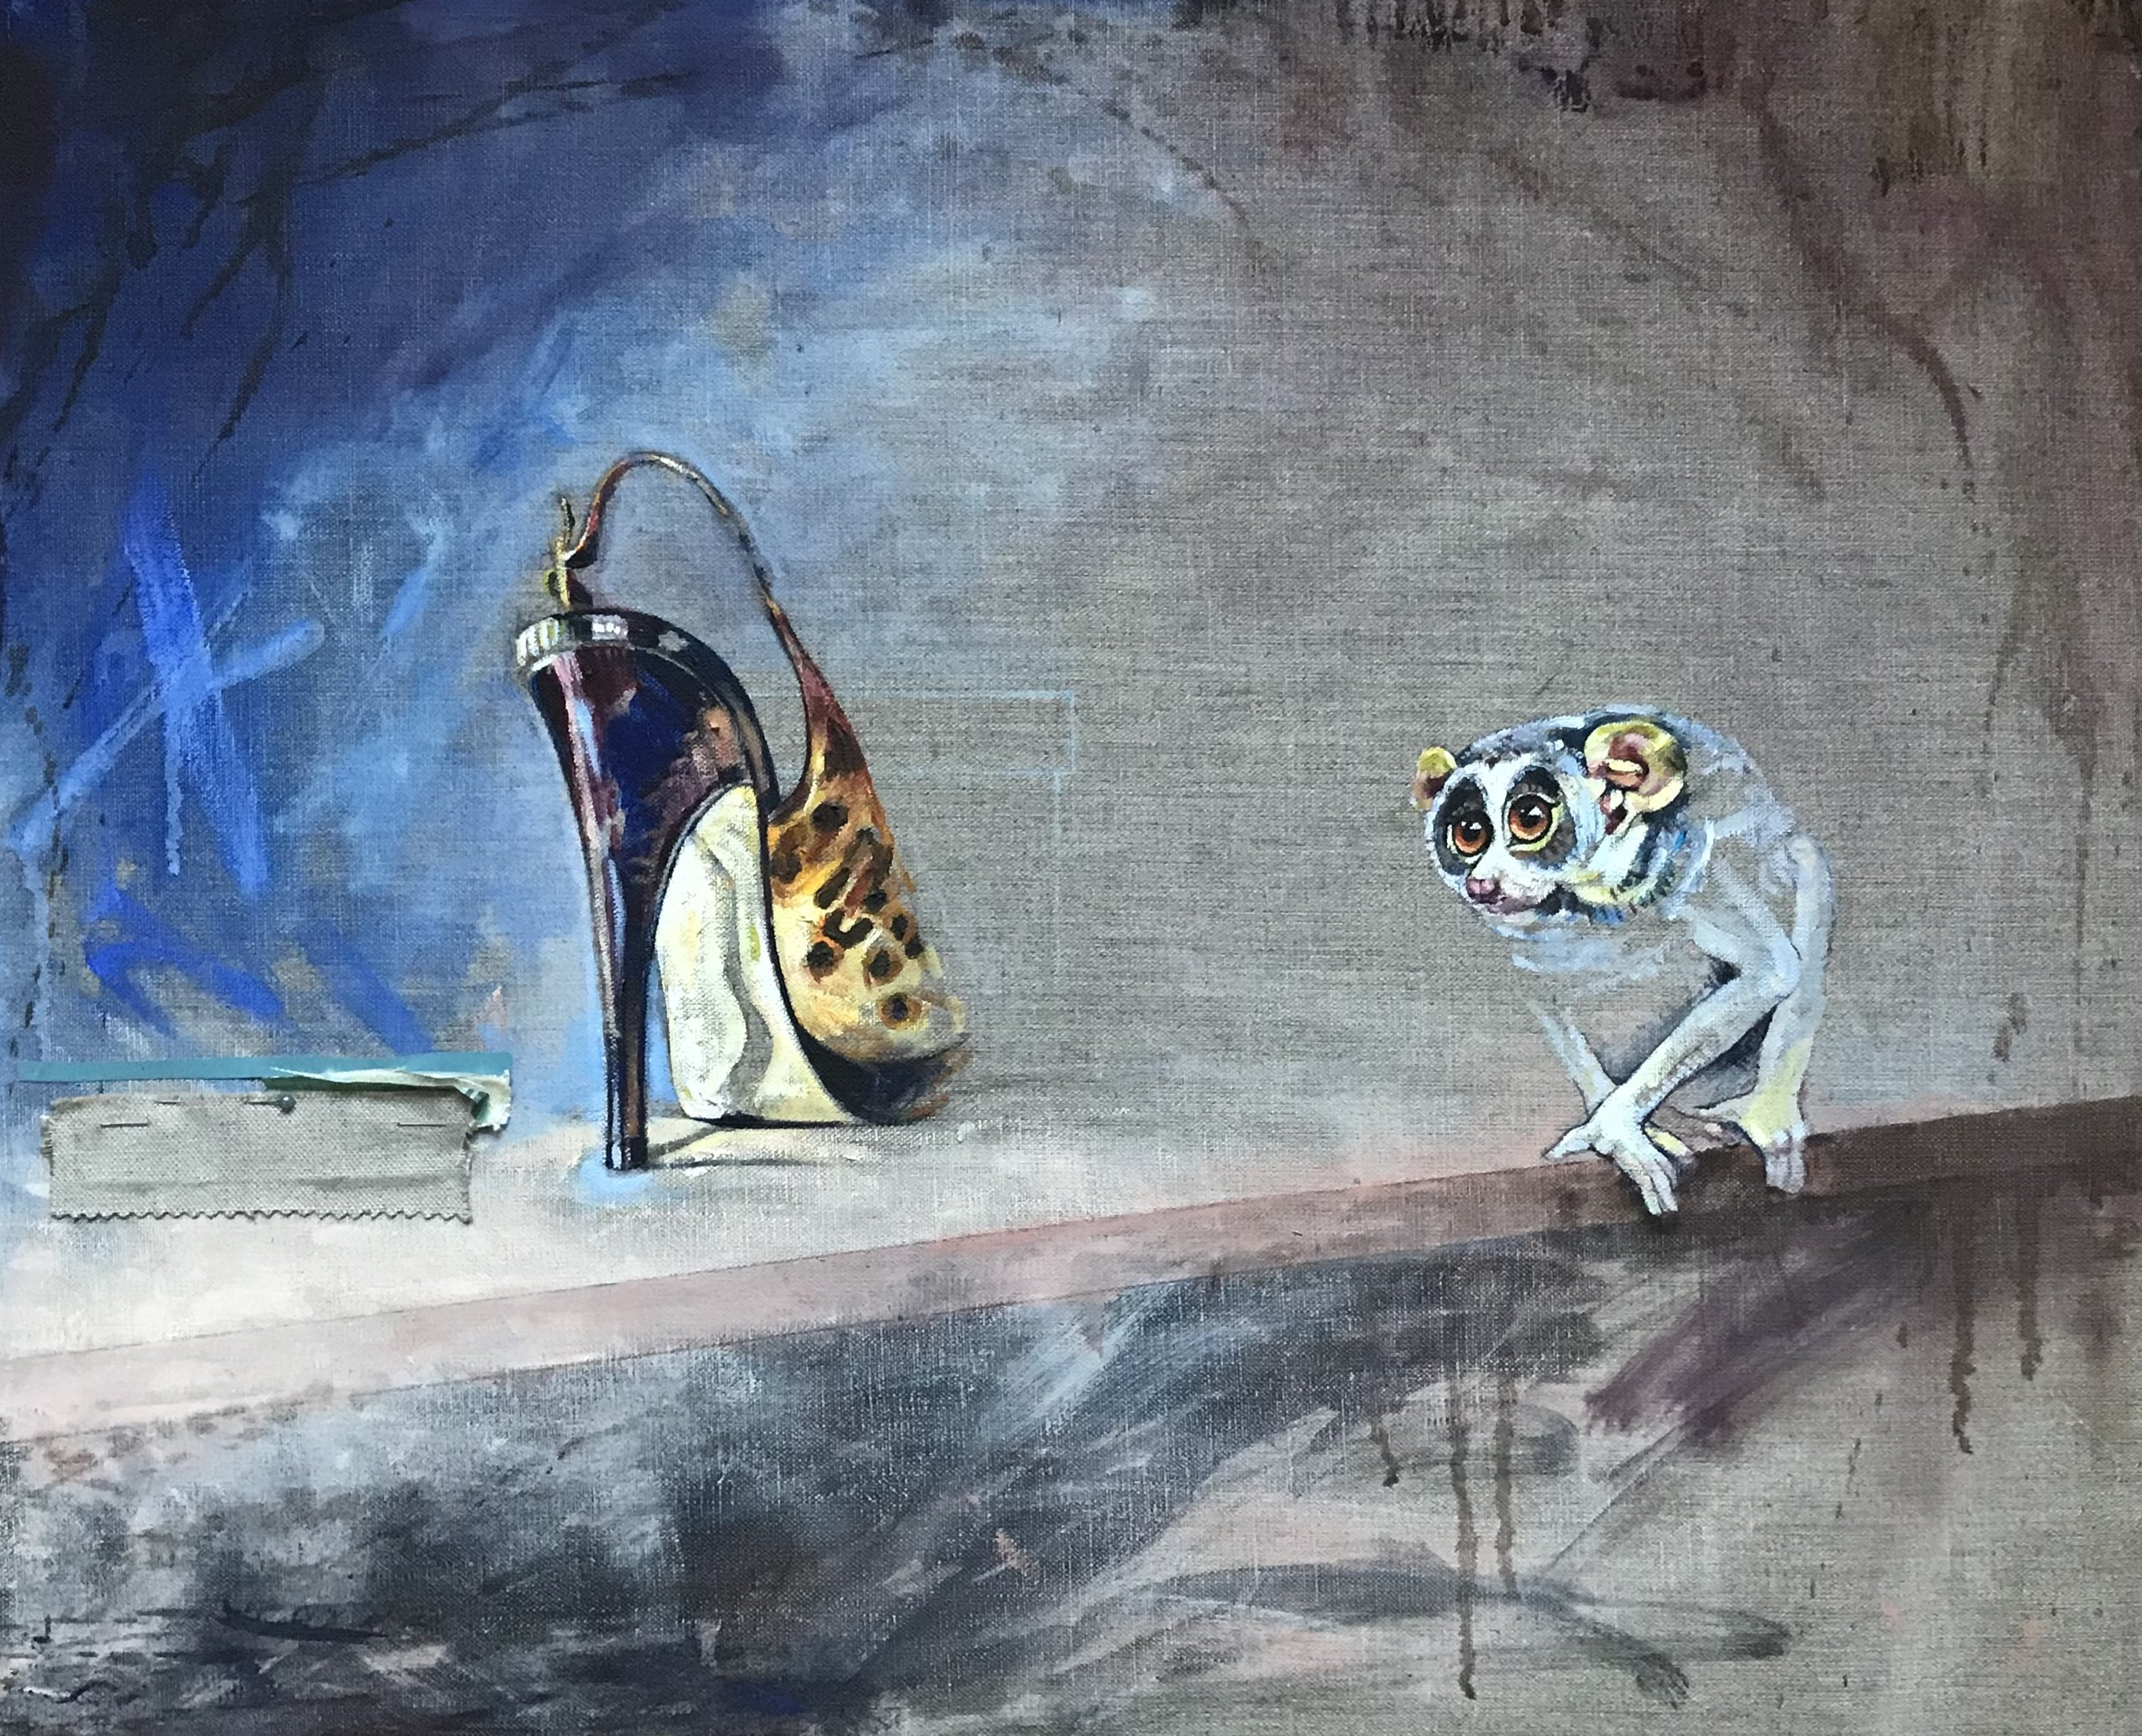 Laura Andrew, Laura Andrew. The Loris Who Loved Shoes, Oil on canvas, 50cm x 61cm x 2cm,  http://www.lauraandrew.com